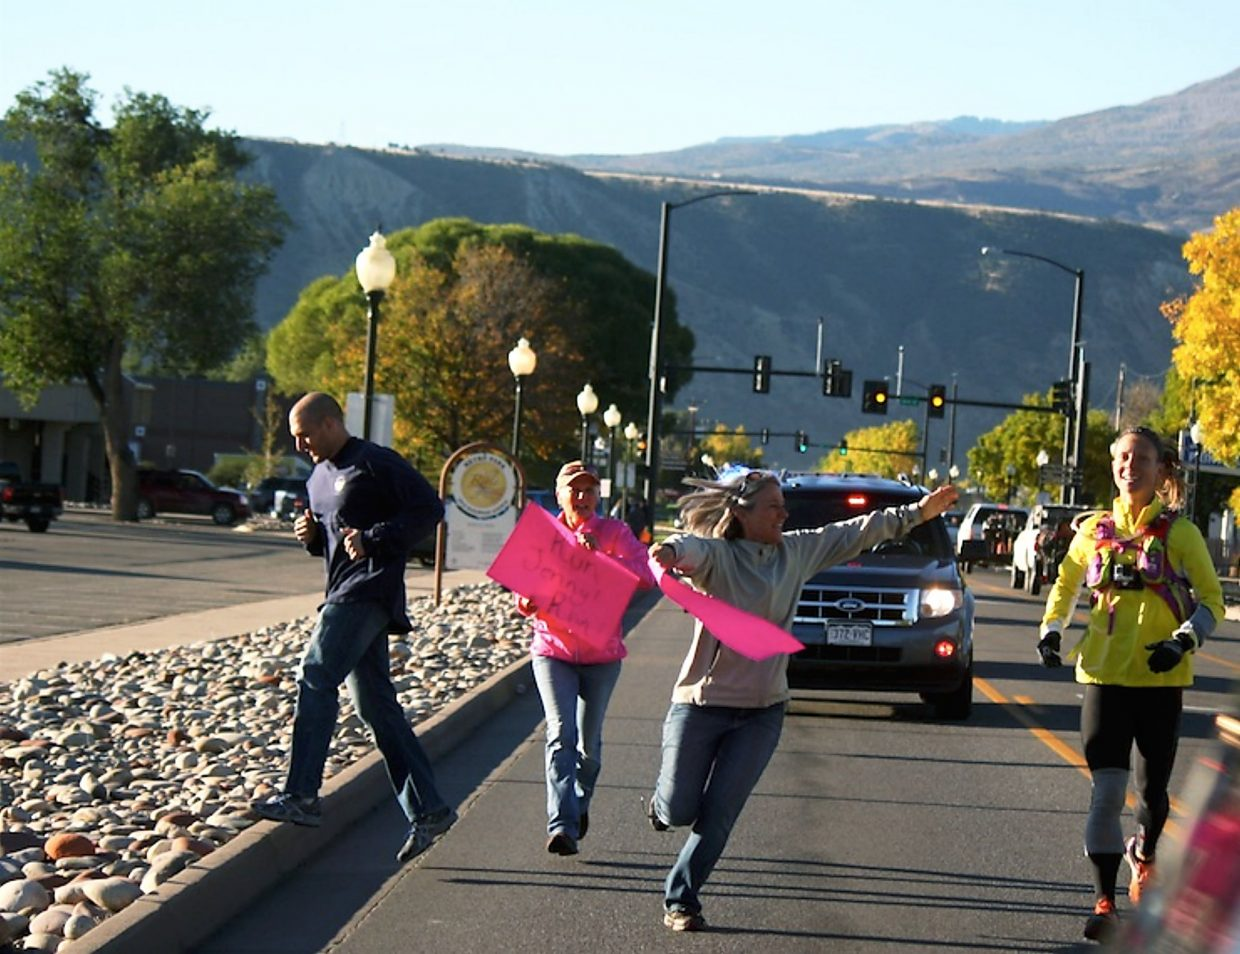 Supporters run alongside Jenny LaBaw on Railroad Avenue in Rifle Thursday.